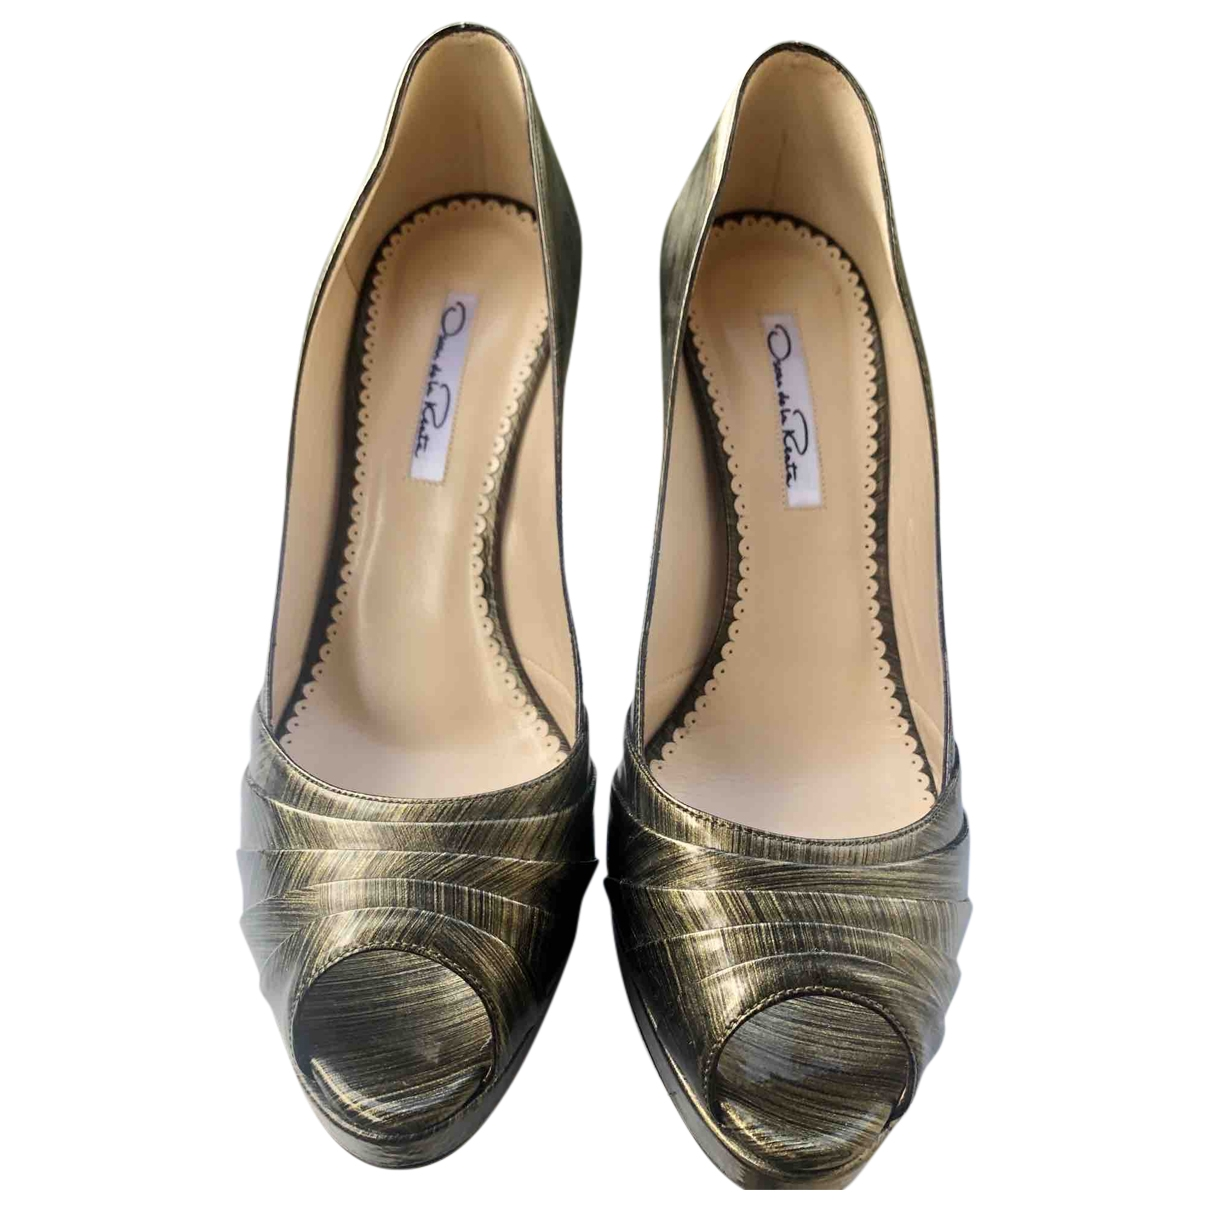 Oscar De La Renta \N Khaki Patent leather Heels for Women 38.5 EU